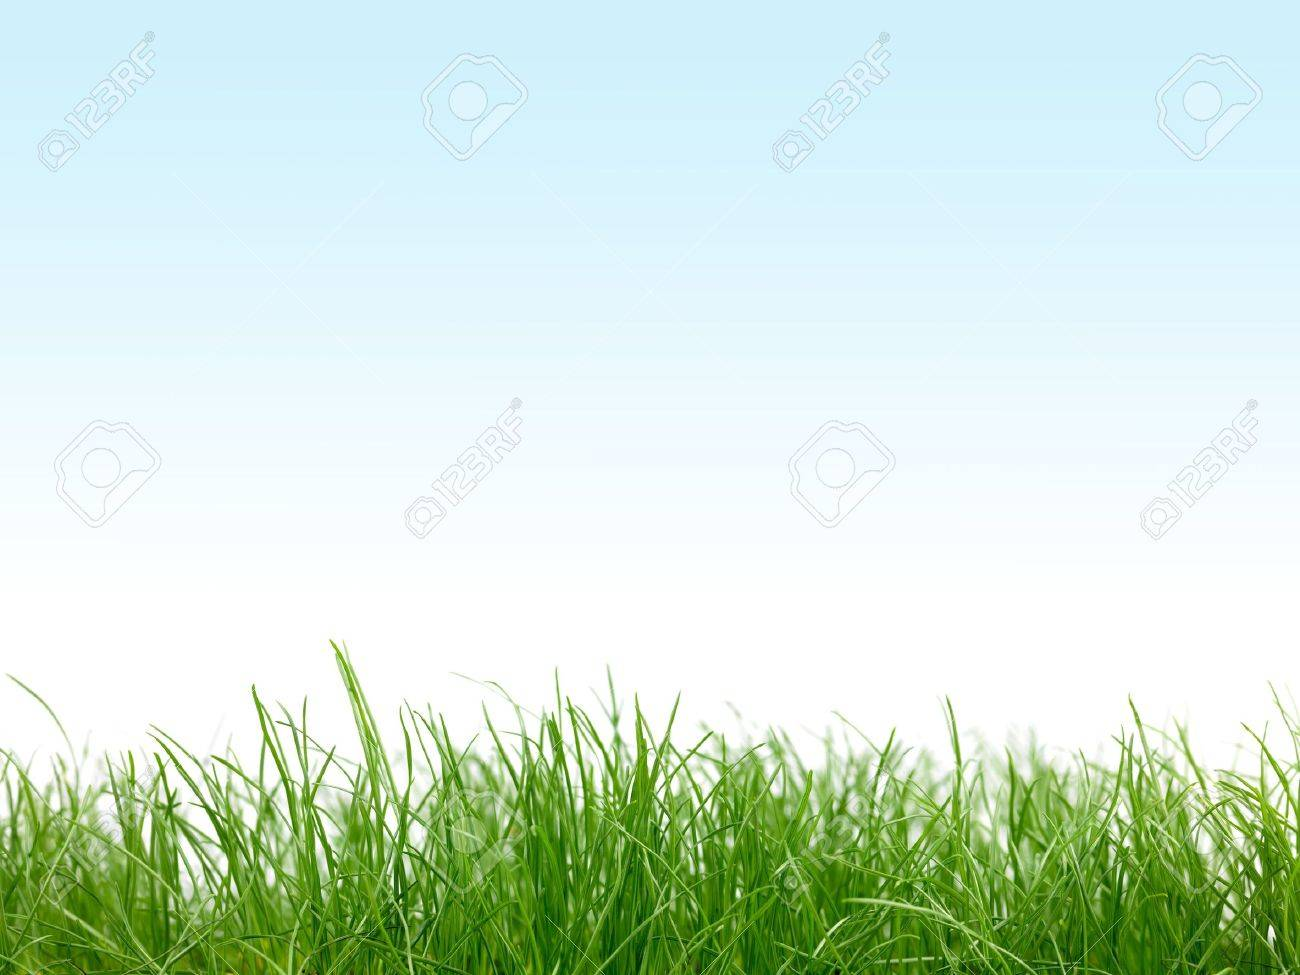 Green grass isolated against a blue sky Stock Photo - 9301622